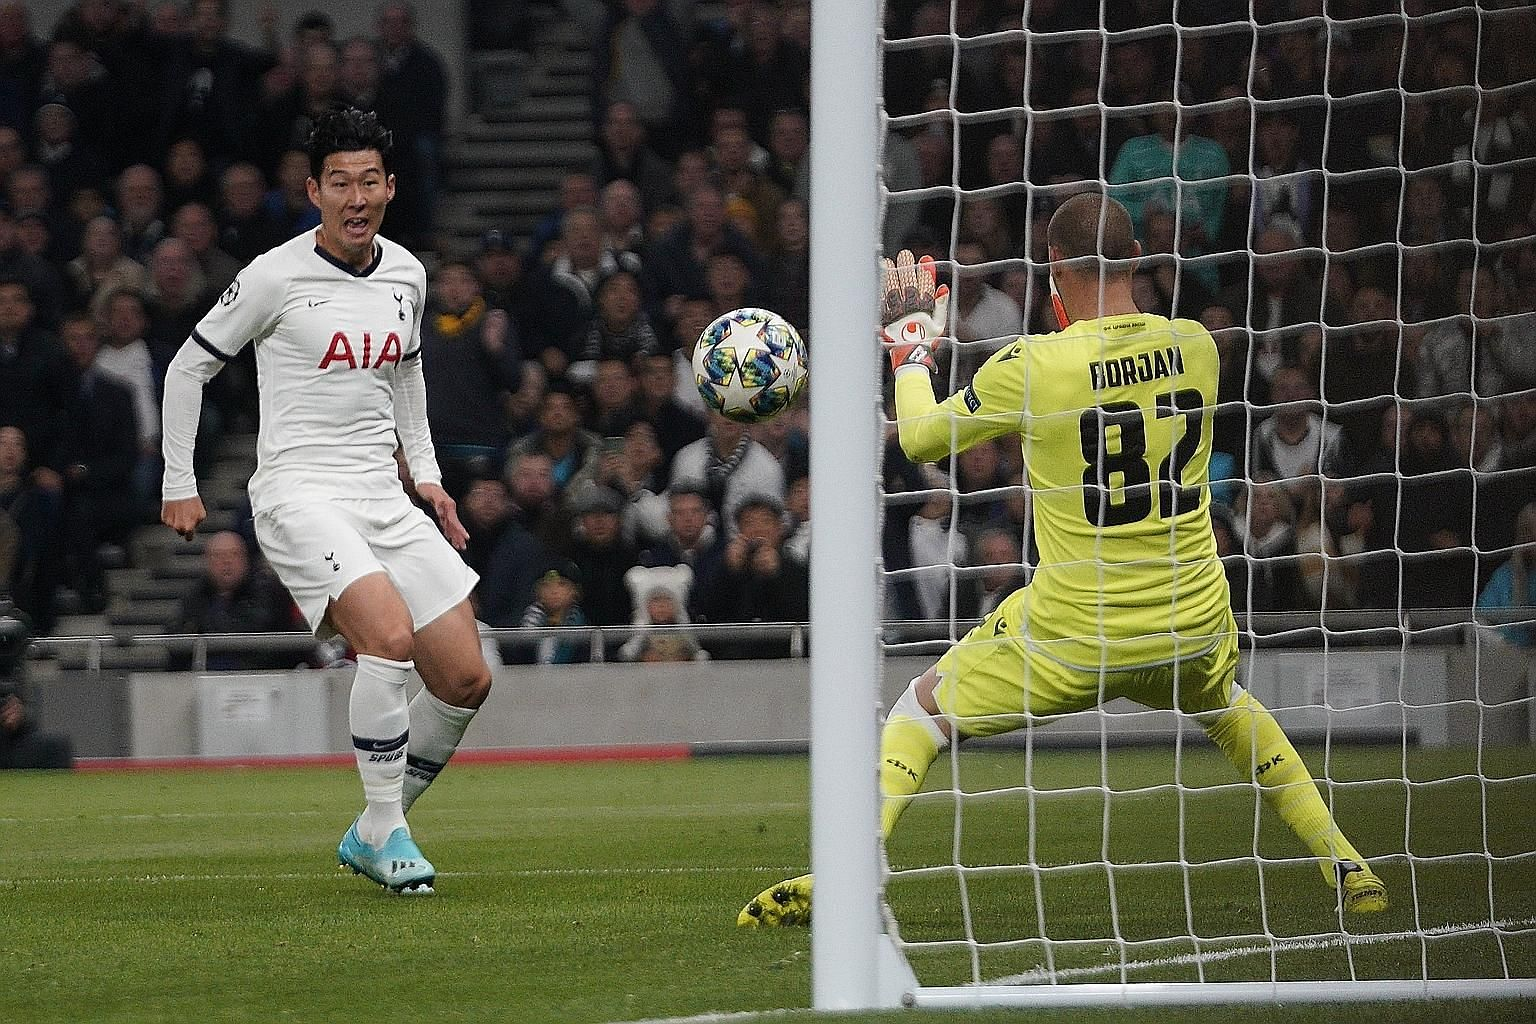 Son Heung-min lashing in Tottenham's second goal in the 5-0 hammering of Red Star Belgrade in the Champions League at the Tottenham Hotspur Stadium on Tuesday night. The win lifted Spurs to second in Group B. PHOTO: EPA-EFE